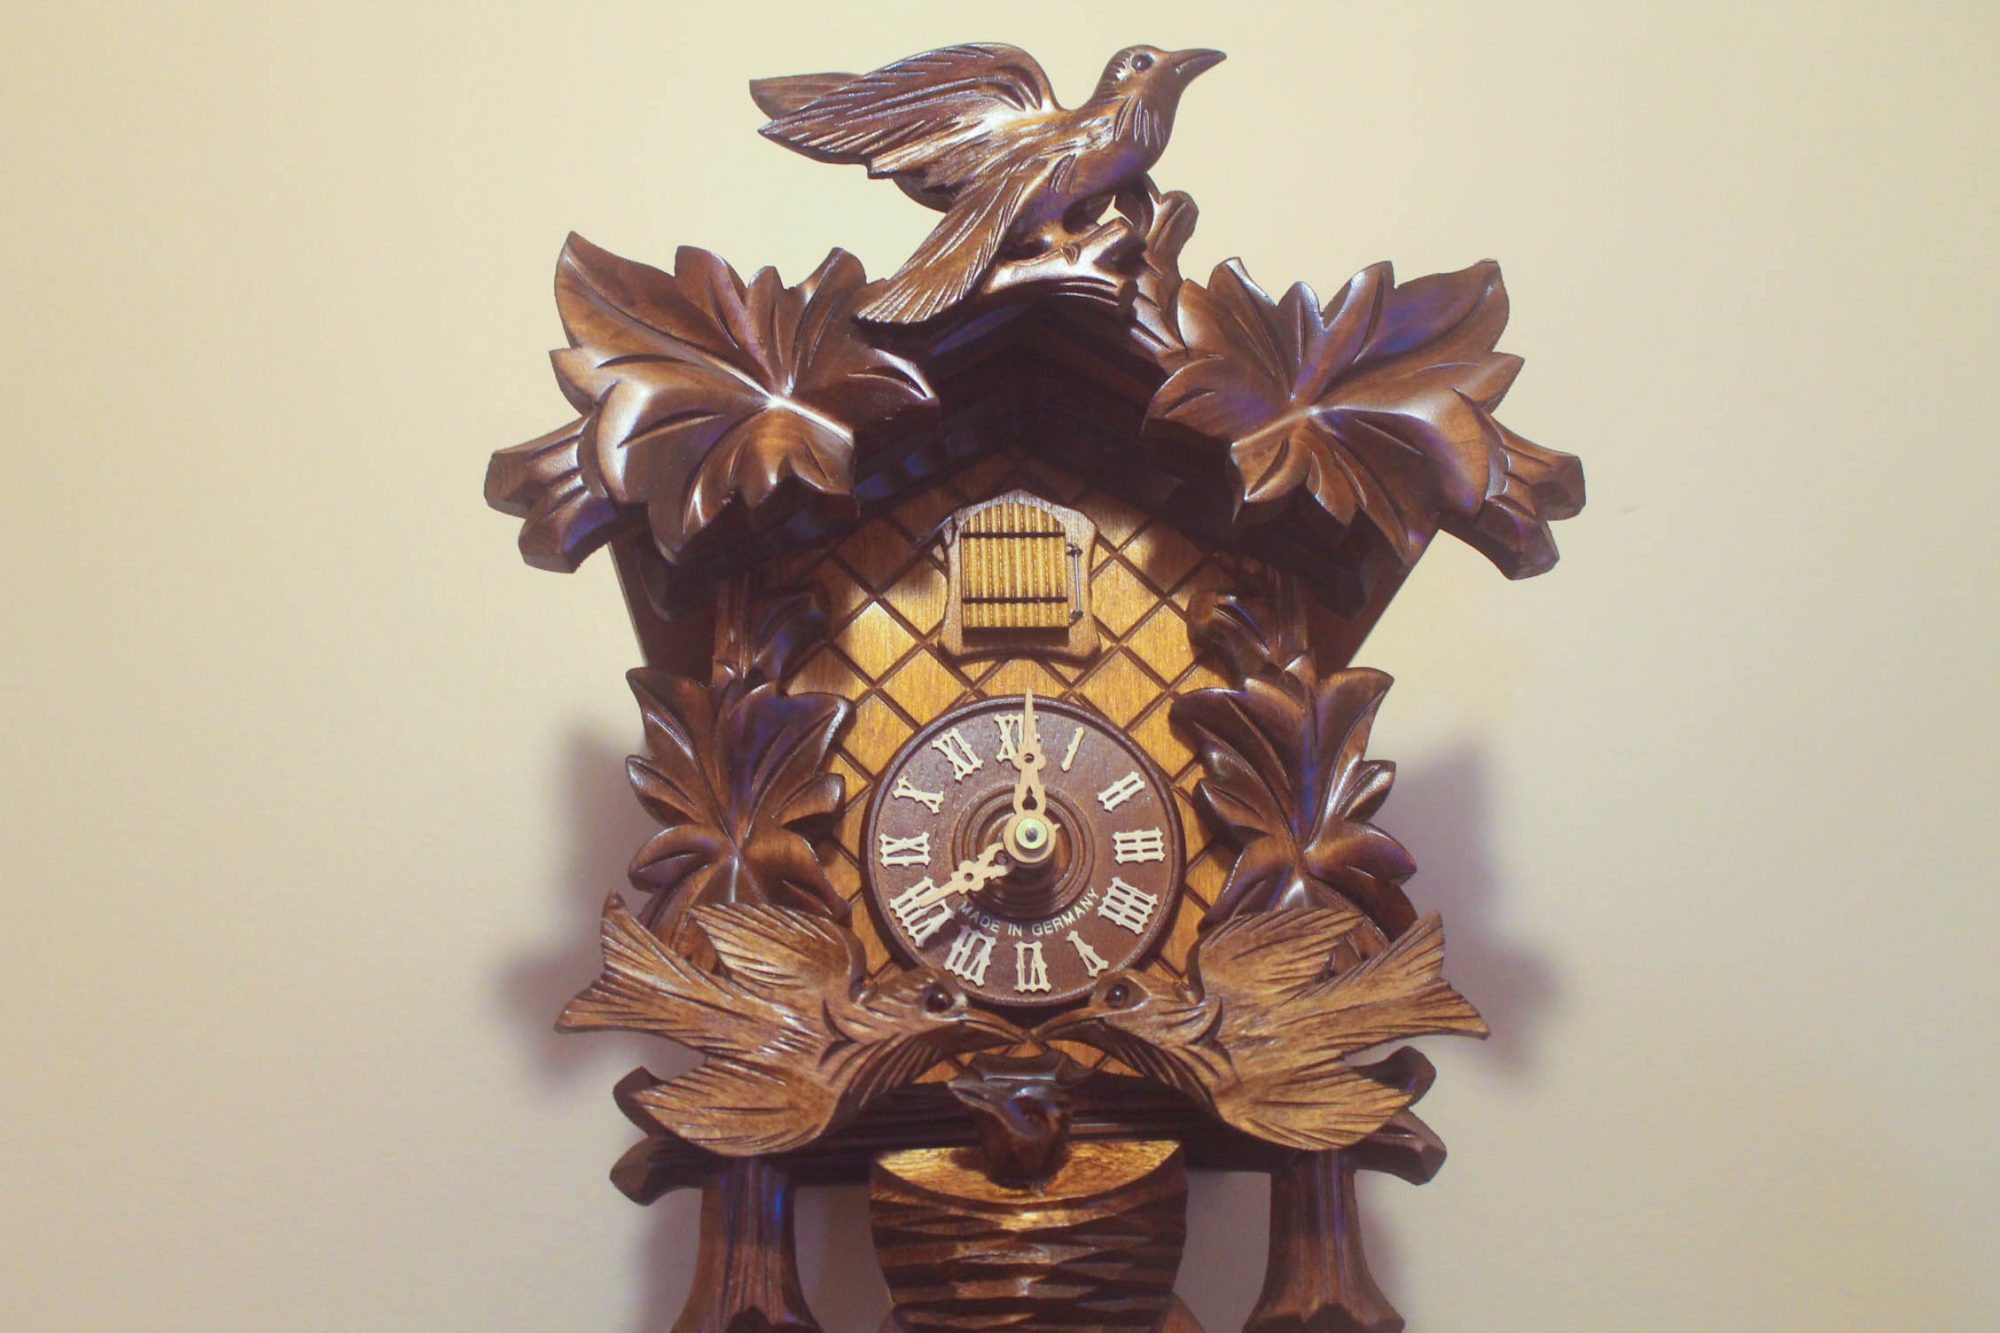 Find Authentic Black Forest Cuckoo Clocks on CuckooClocks.com